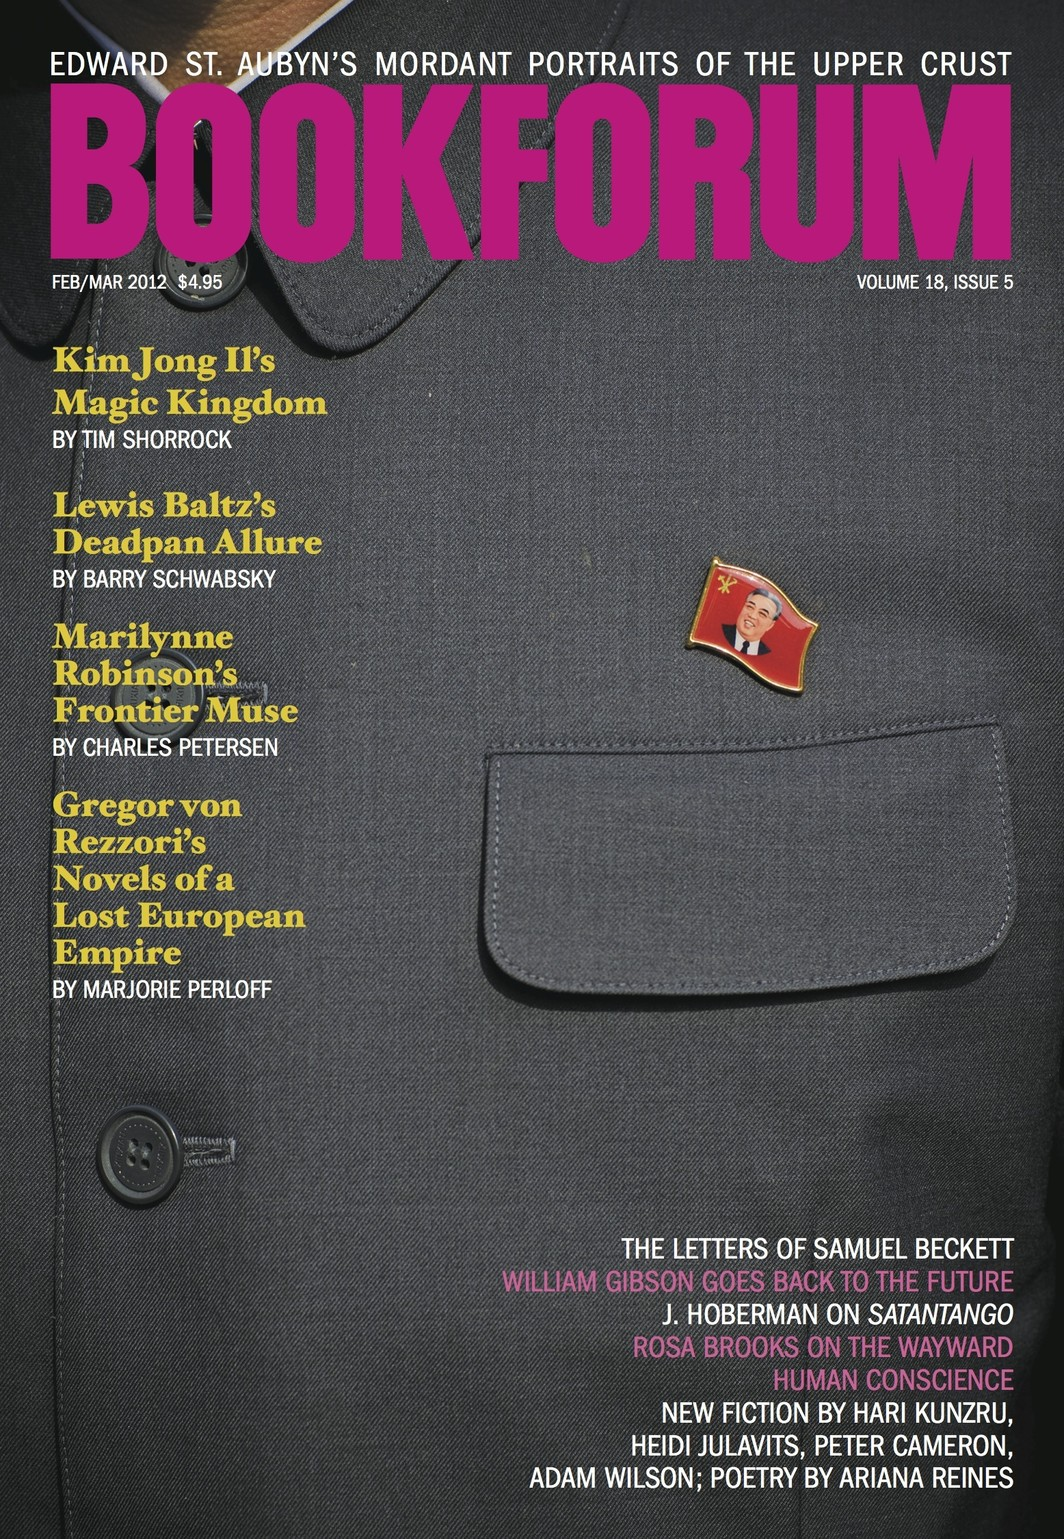 Cover of Feb/Mar 2012